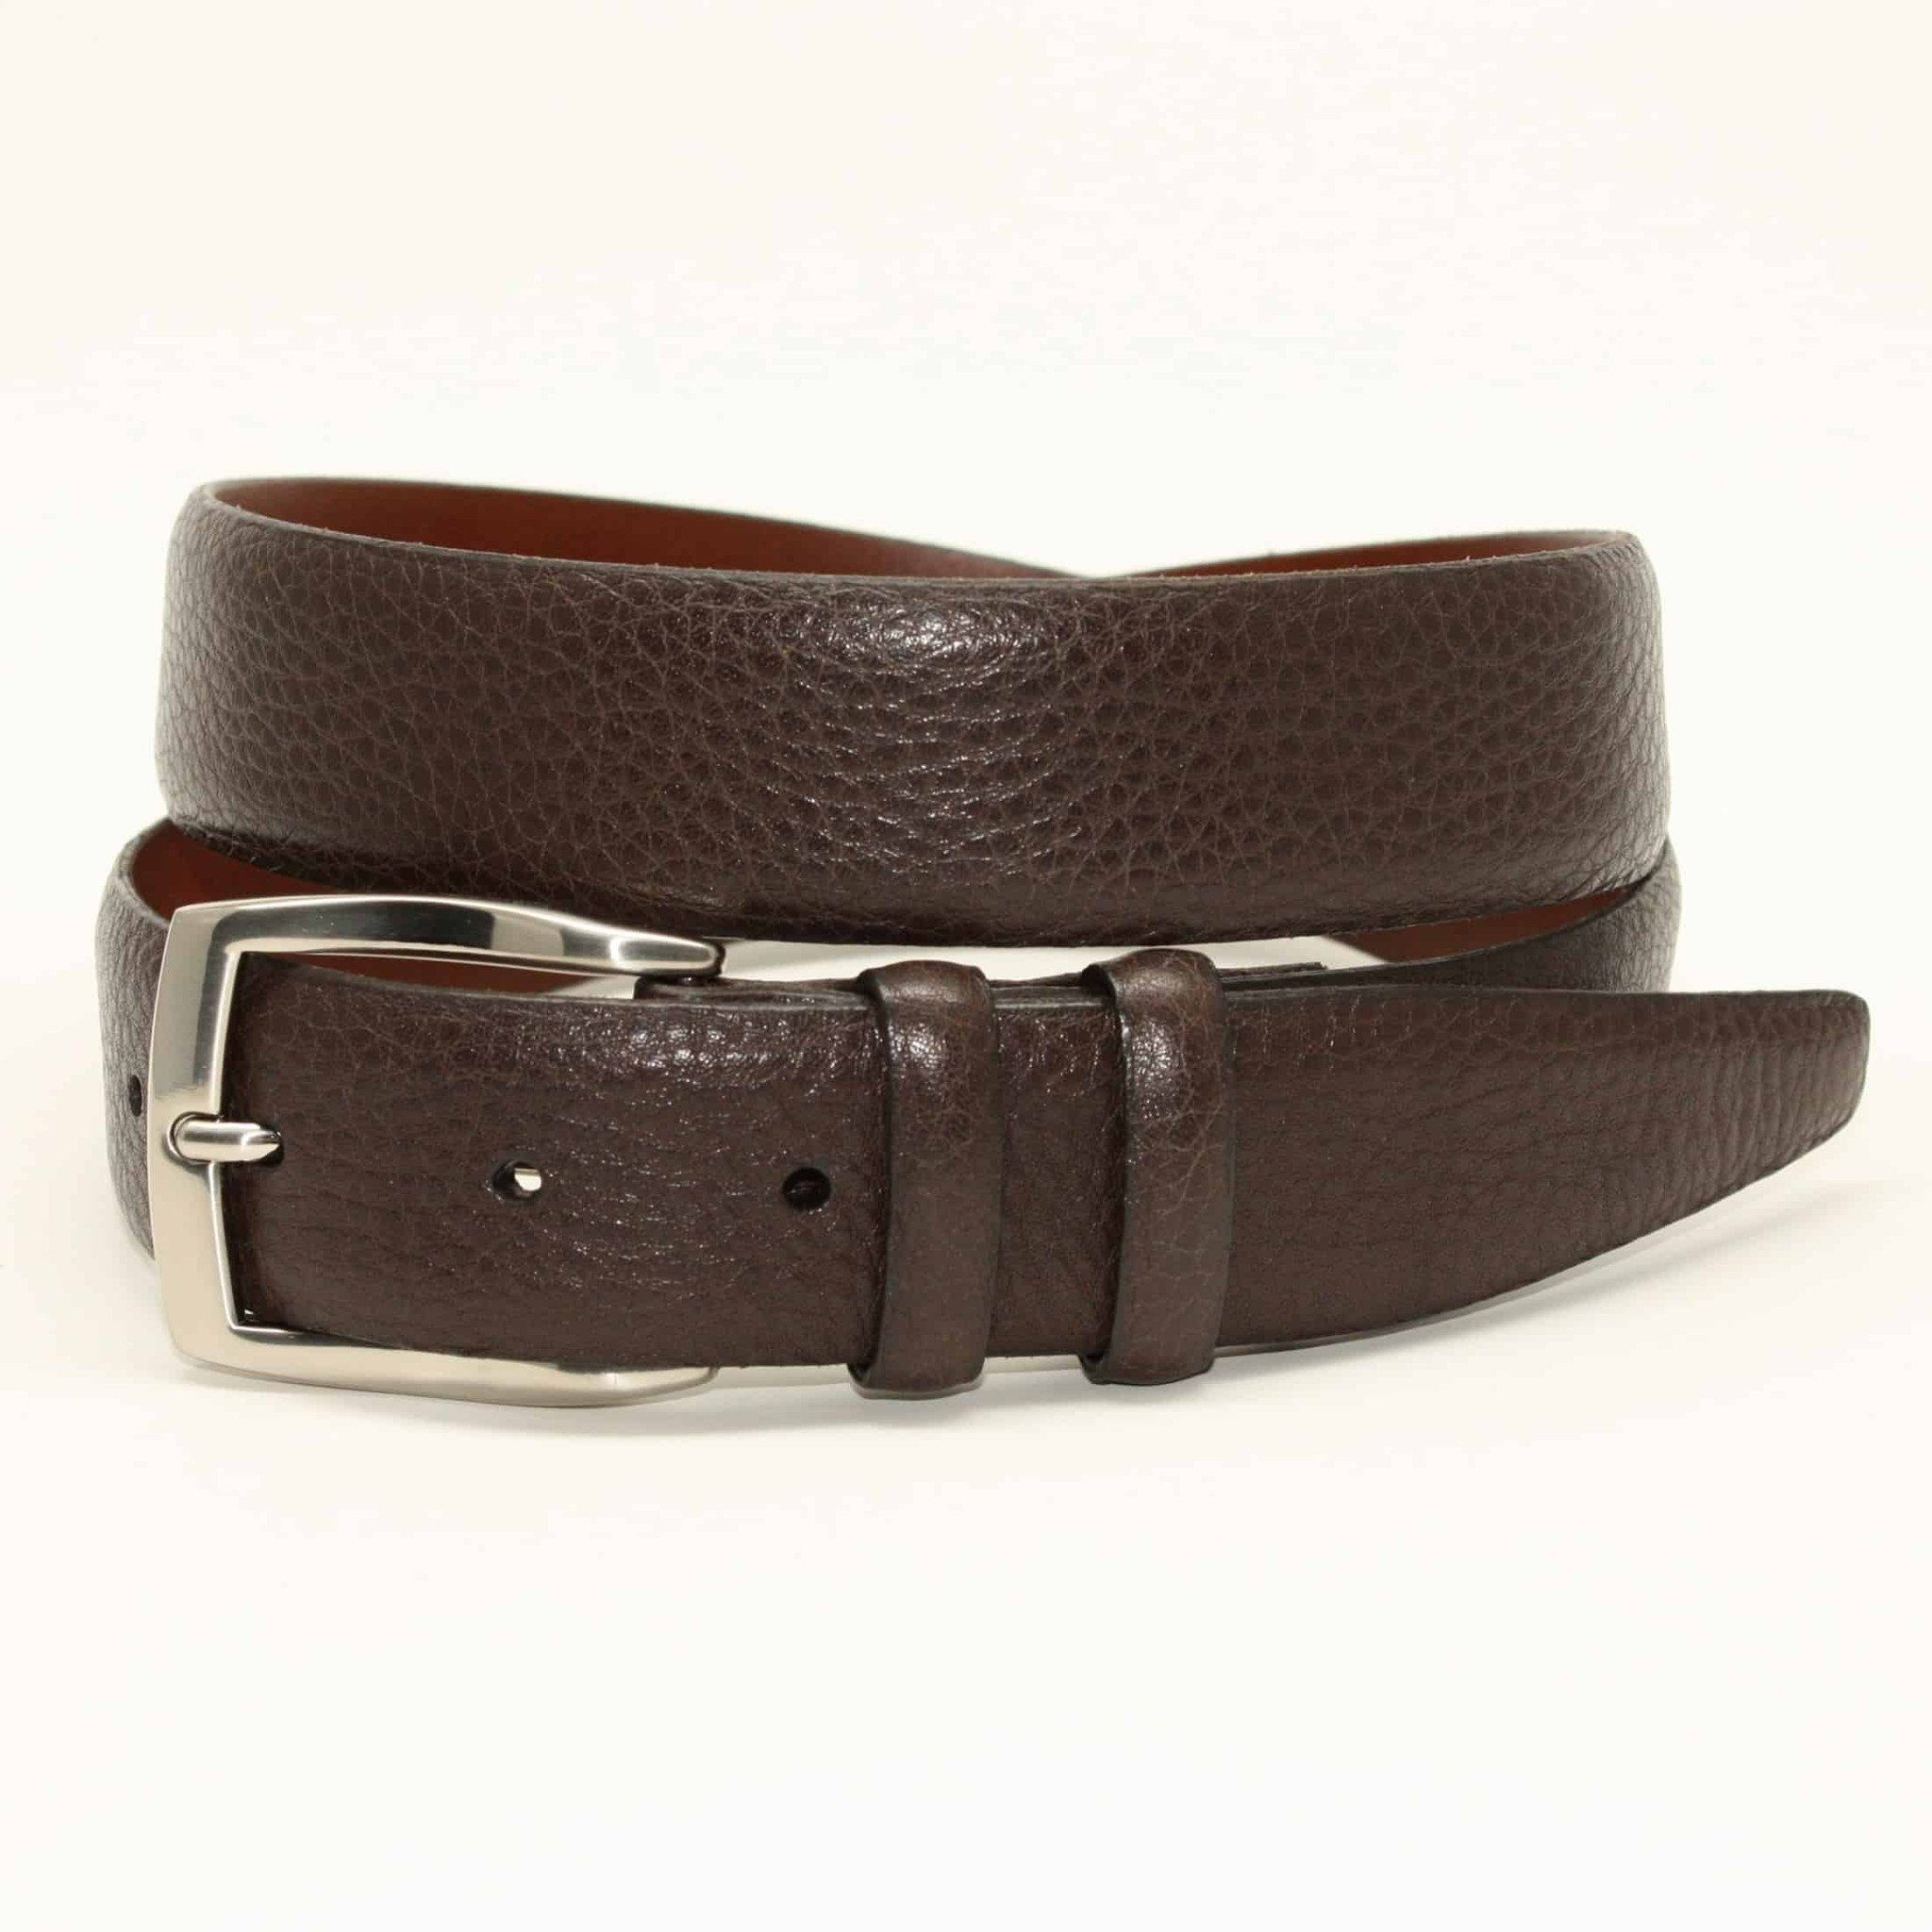 X-LONG Pebble Grained Calfskin Belt - Brown,BELT,GentRow.com, | GentRow.com